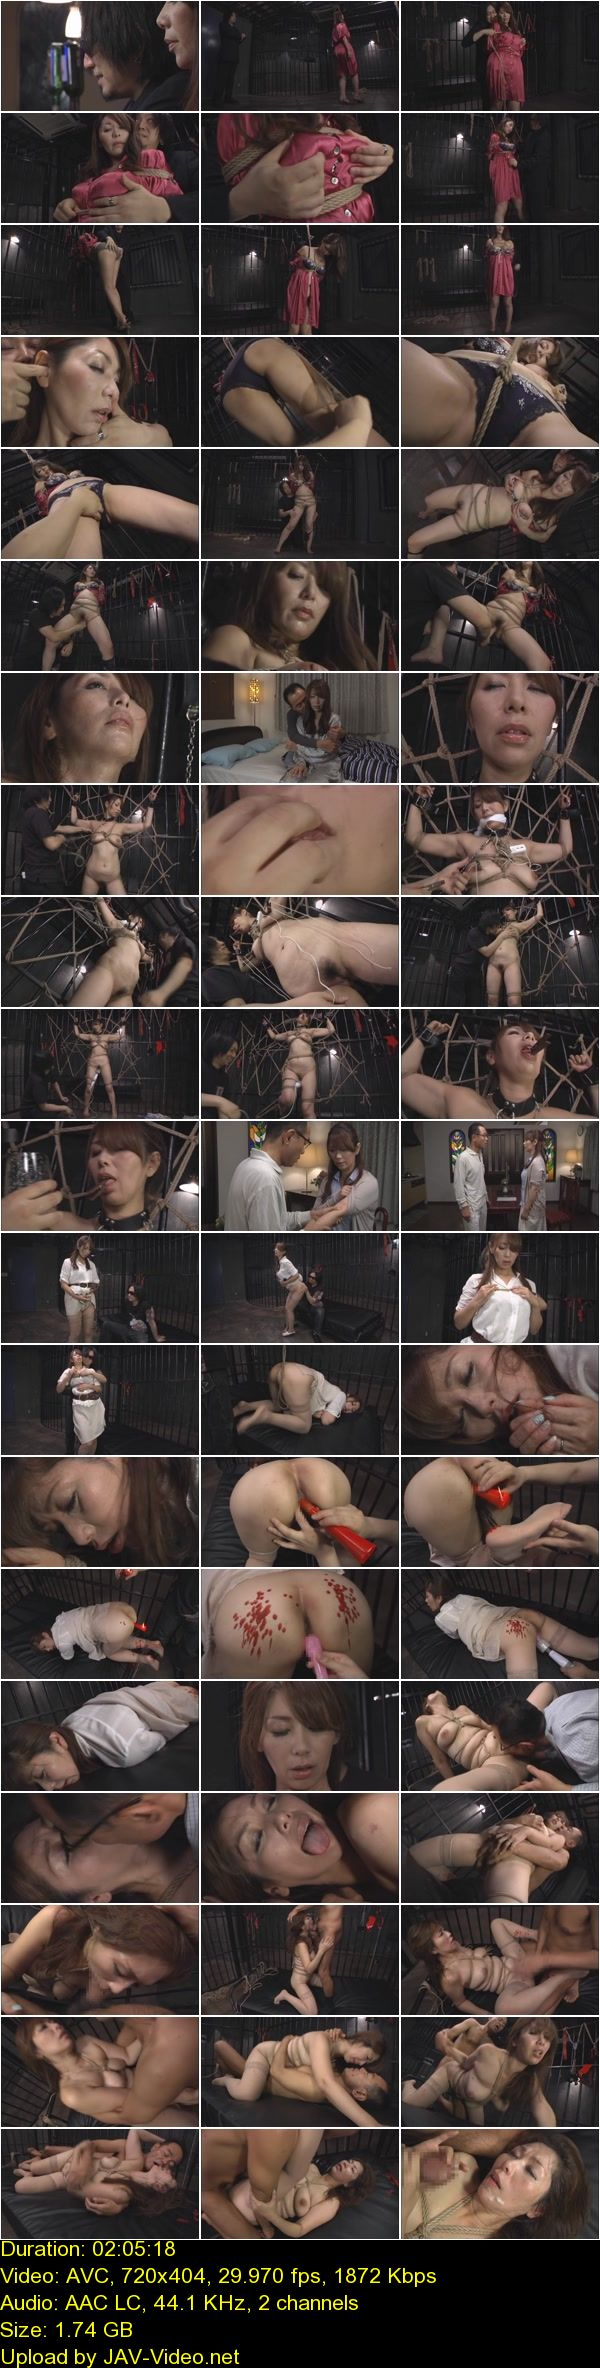 JAV Download Chisato Shoda [GTJ 037] 縄に寝取られた妻 翔田千里 Planning Irama Mature 凌辱 Chisato Shouda Torture 2014 10 19